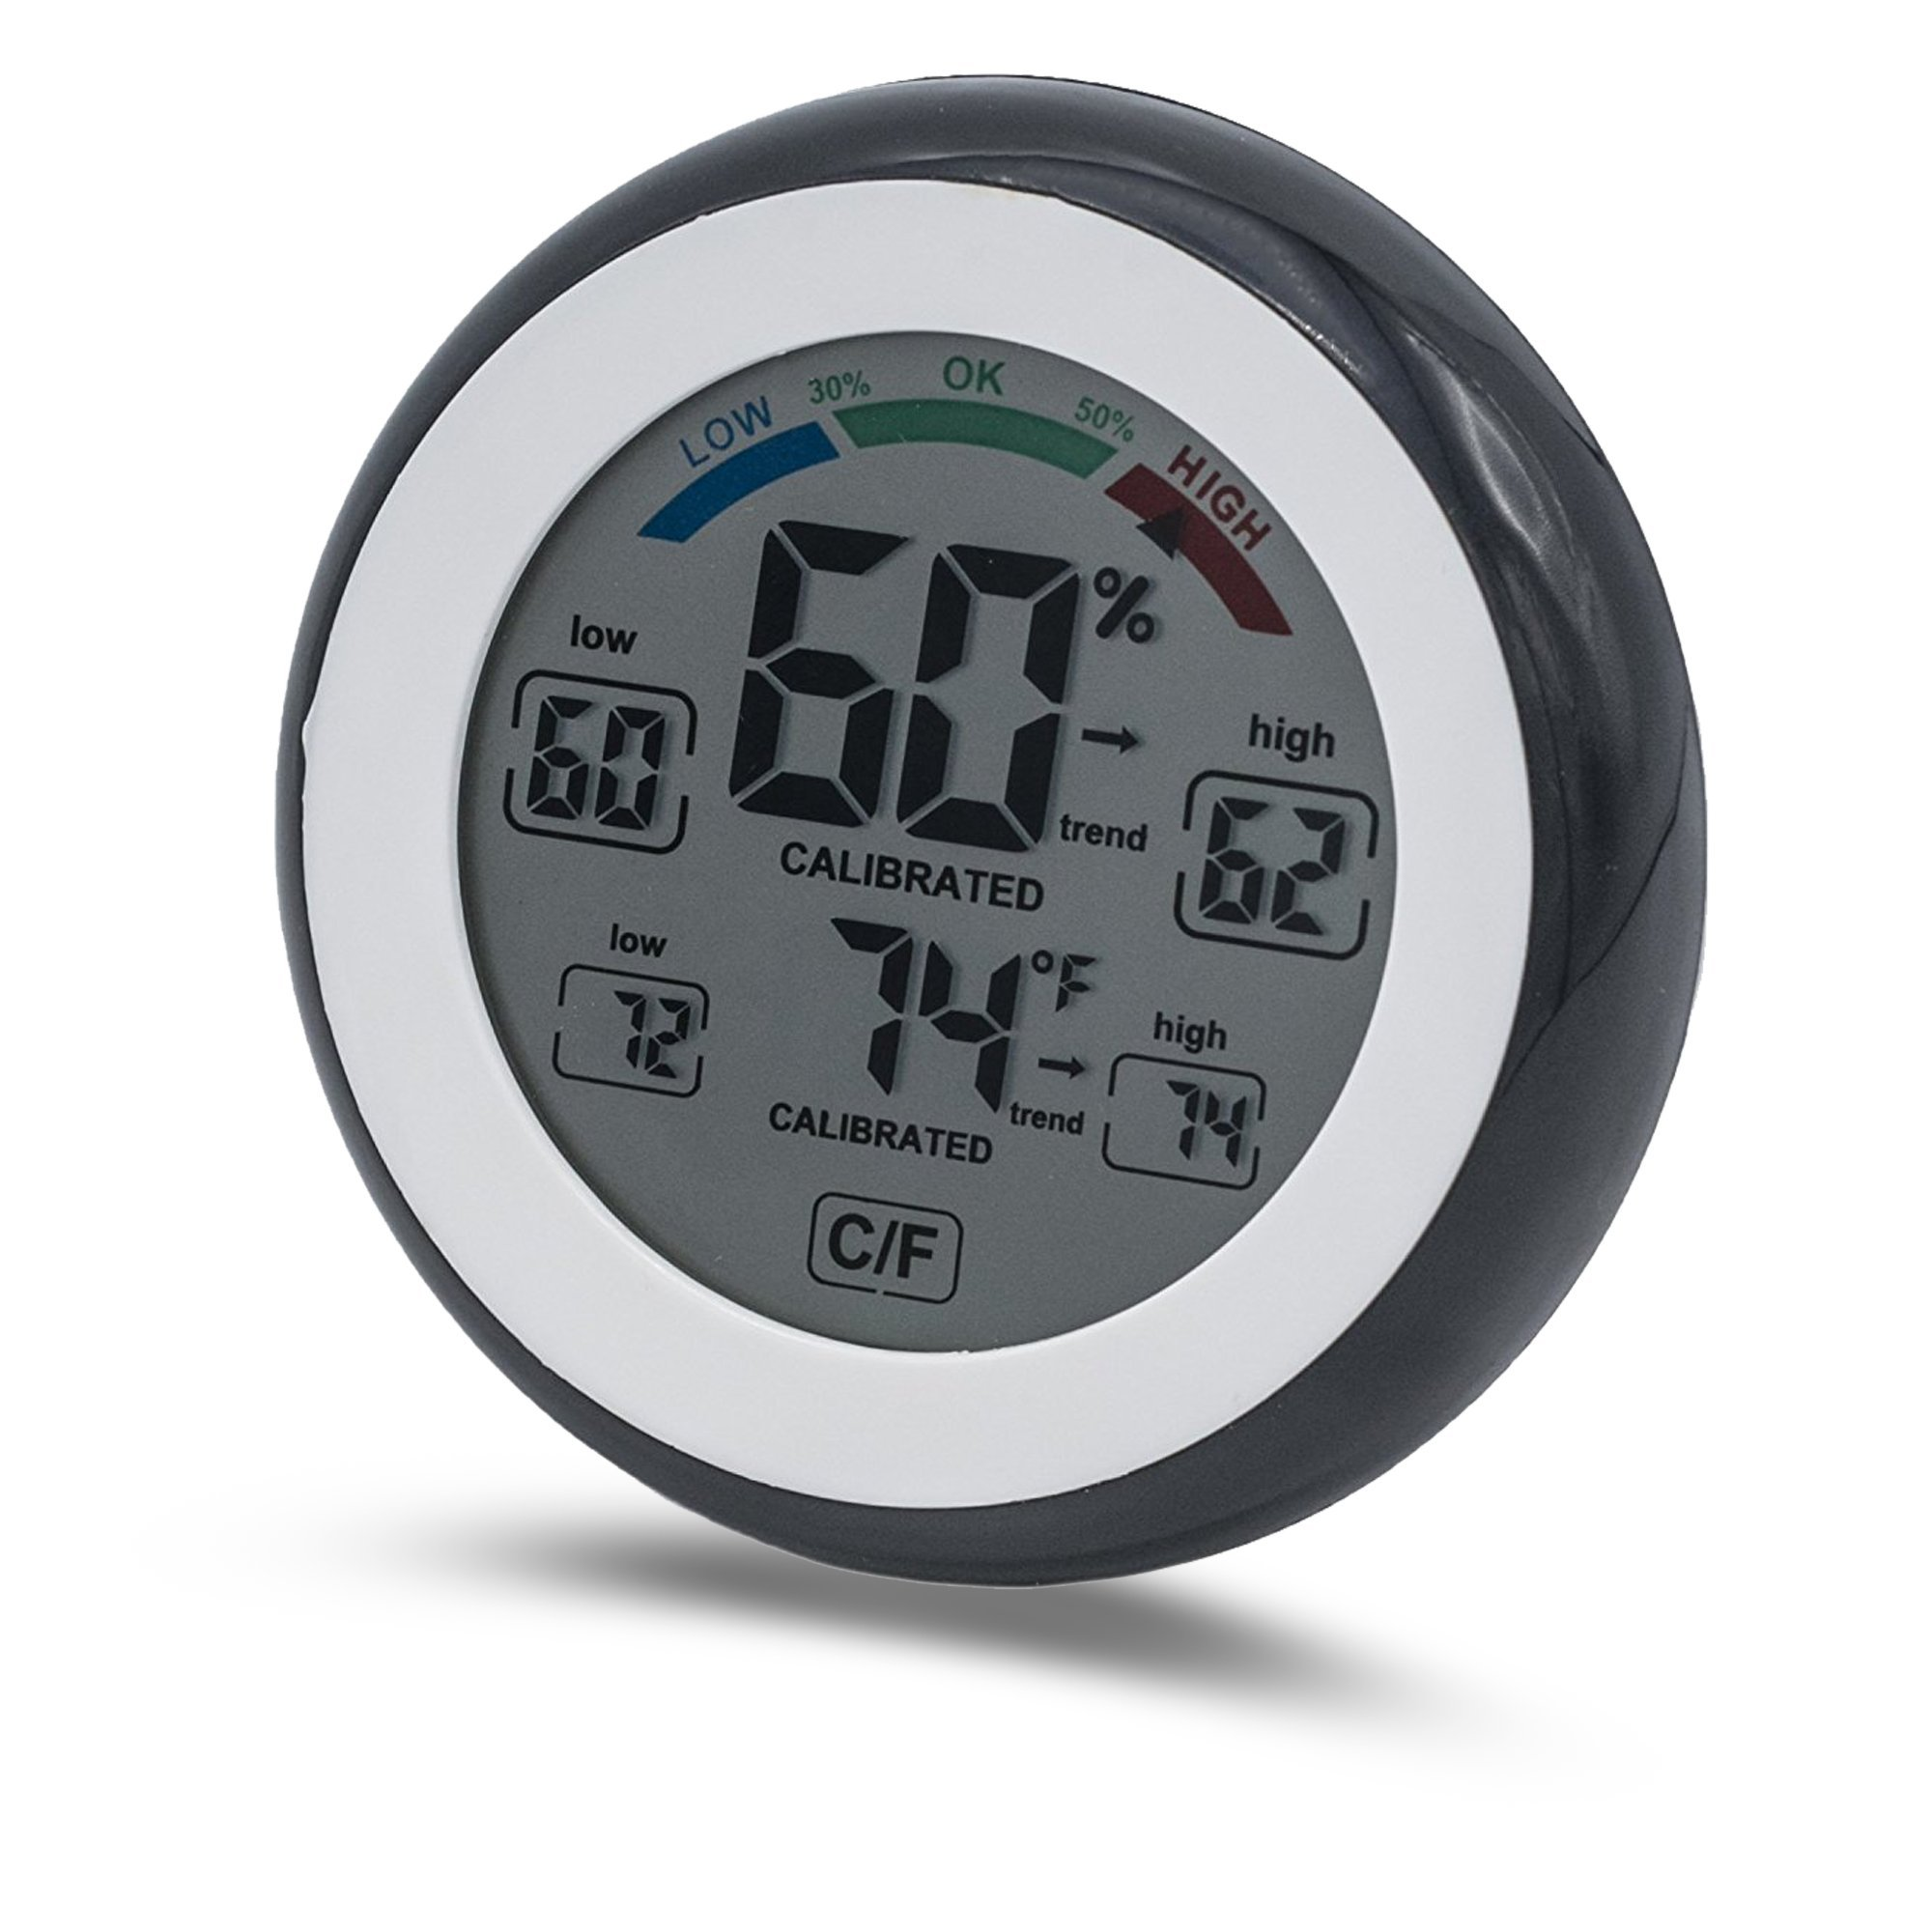 Zone - 365 Hygrometer with Digital Thermometer Humidity and Temperature Monitoring. Active Color LCD Touch Screen Switching Between C & F